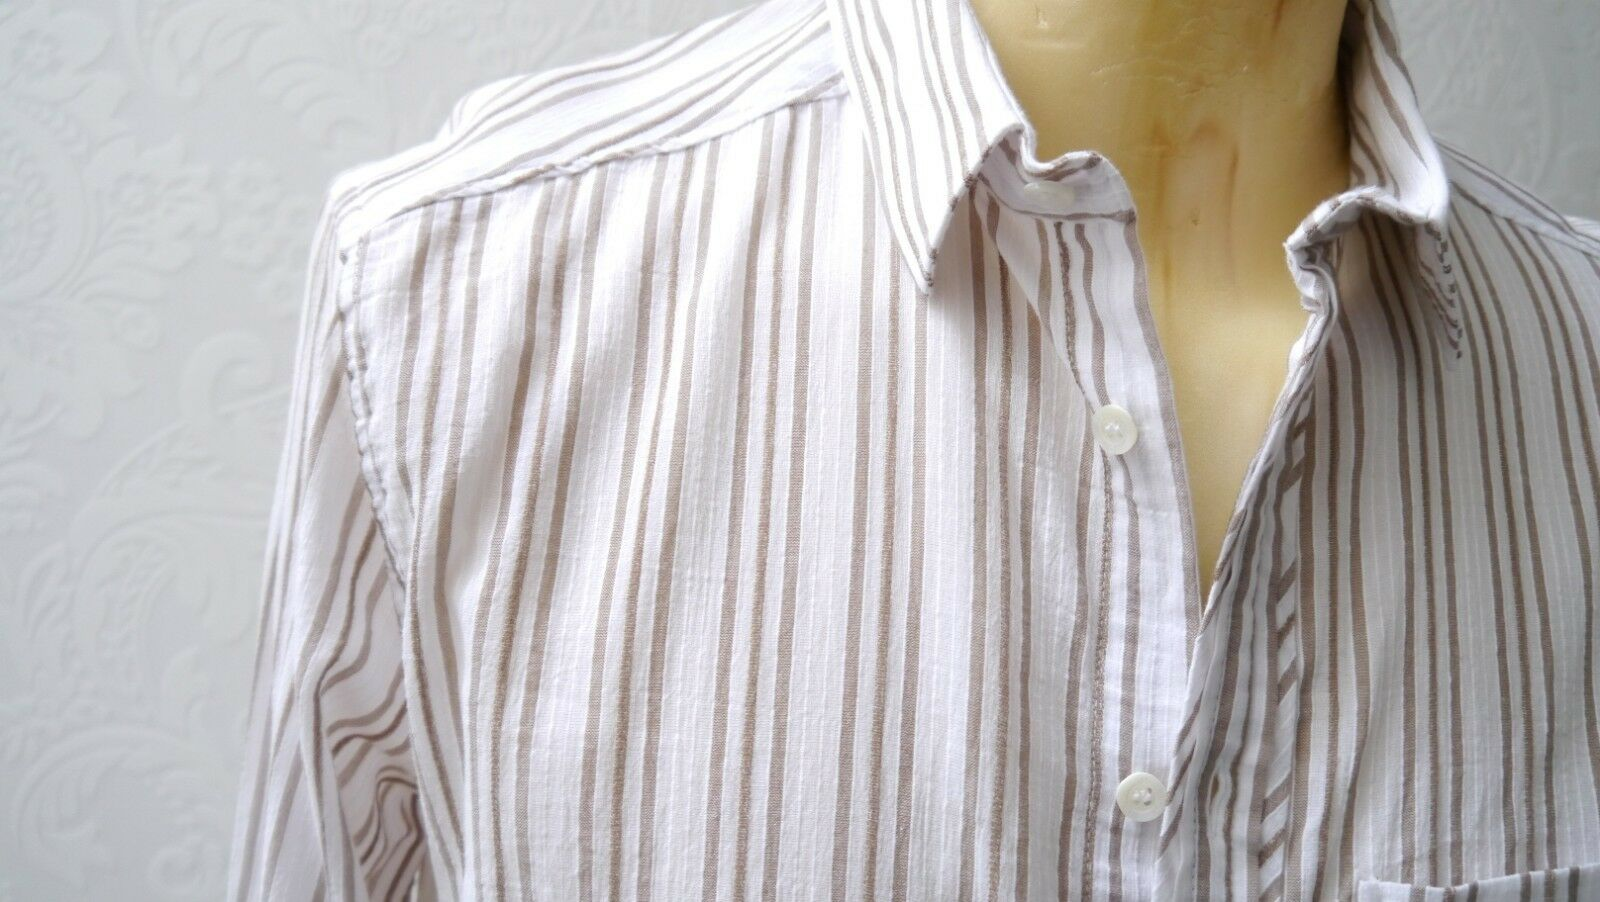 CHEMISE HOMME HOMME HOMME DOLCE & GABBANA Chemise Taille 52, 100% authentique, neuf 500d41